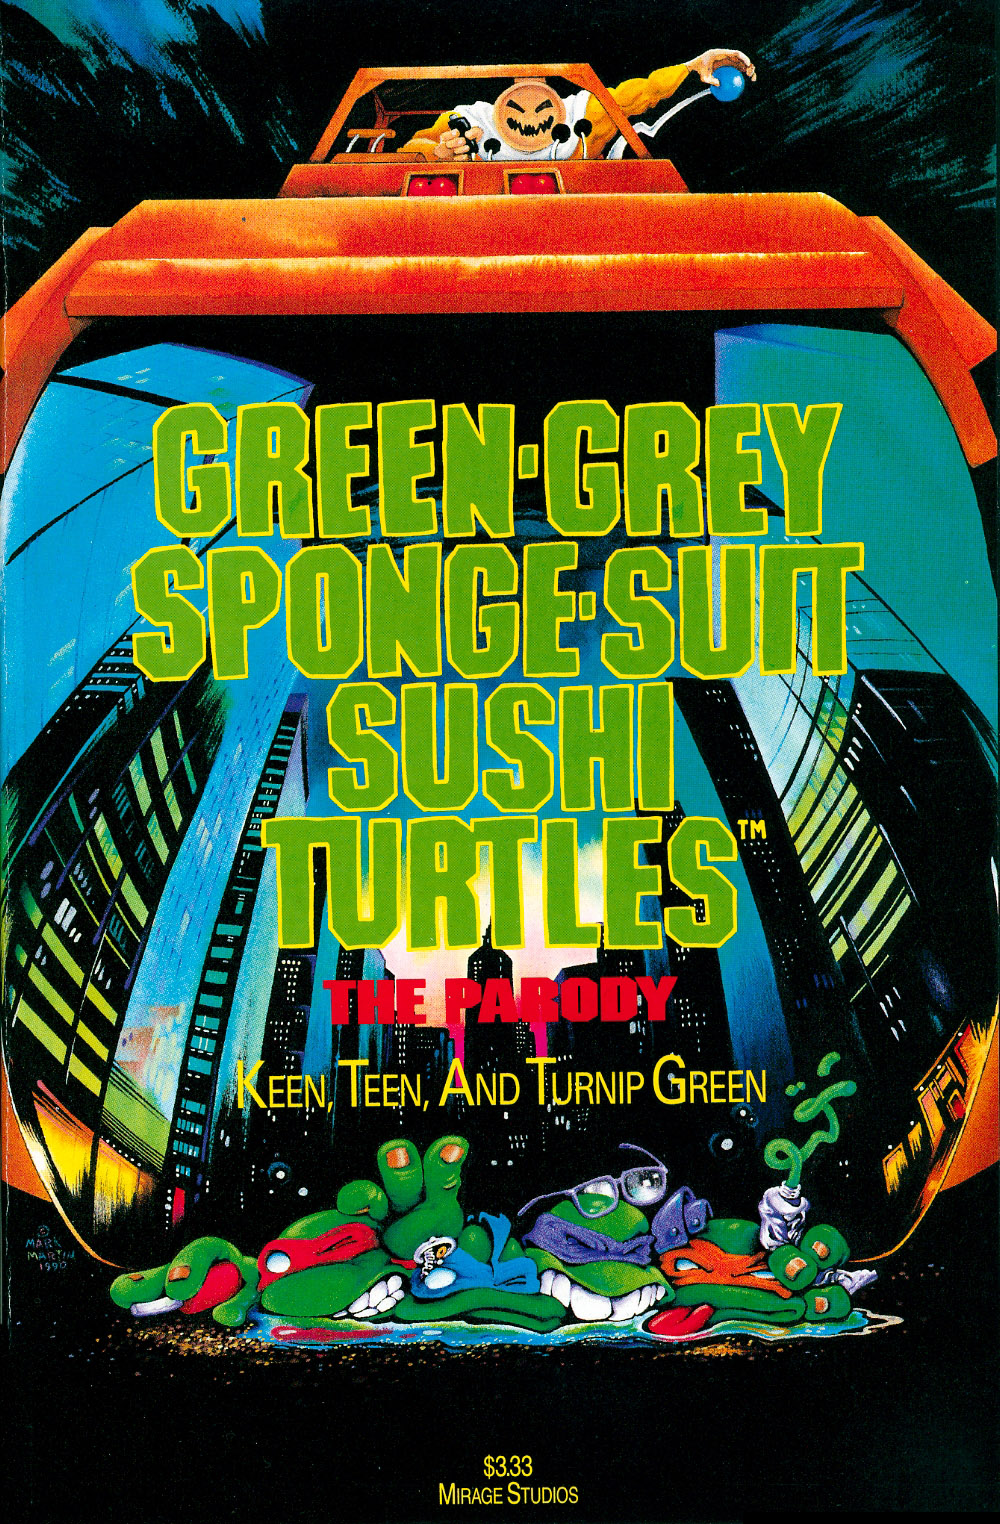 Green-Grey Sponge-Suit Sushi Turtles